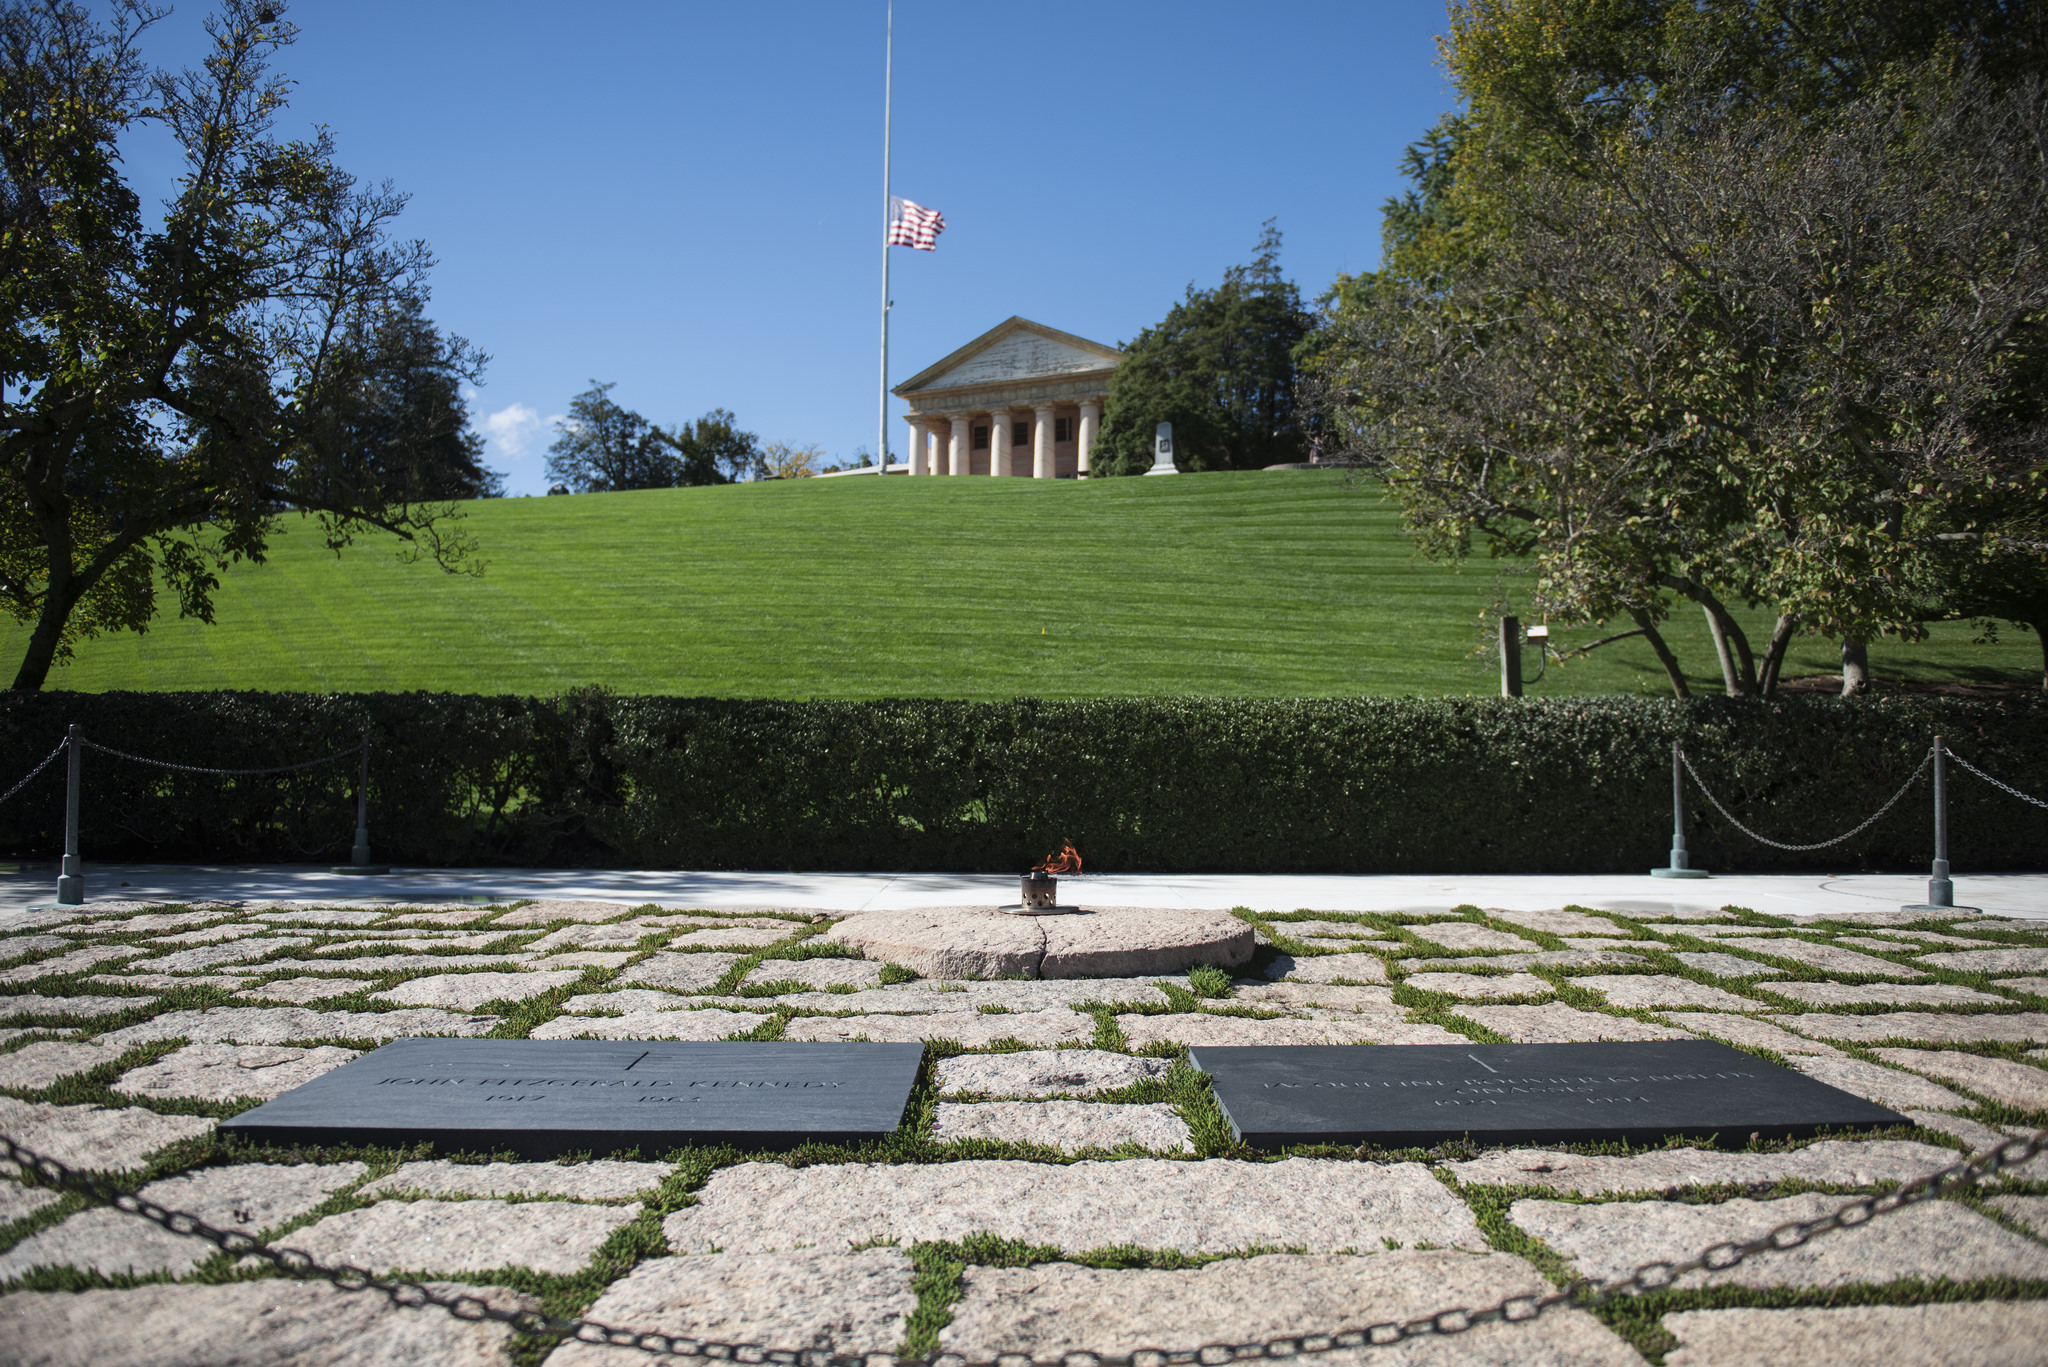 The gravesite of President John F. Kennedy